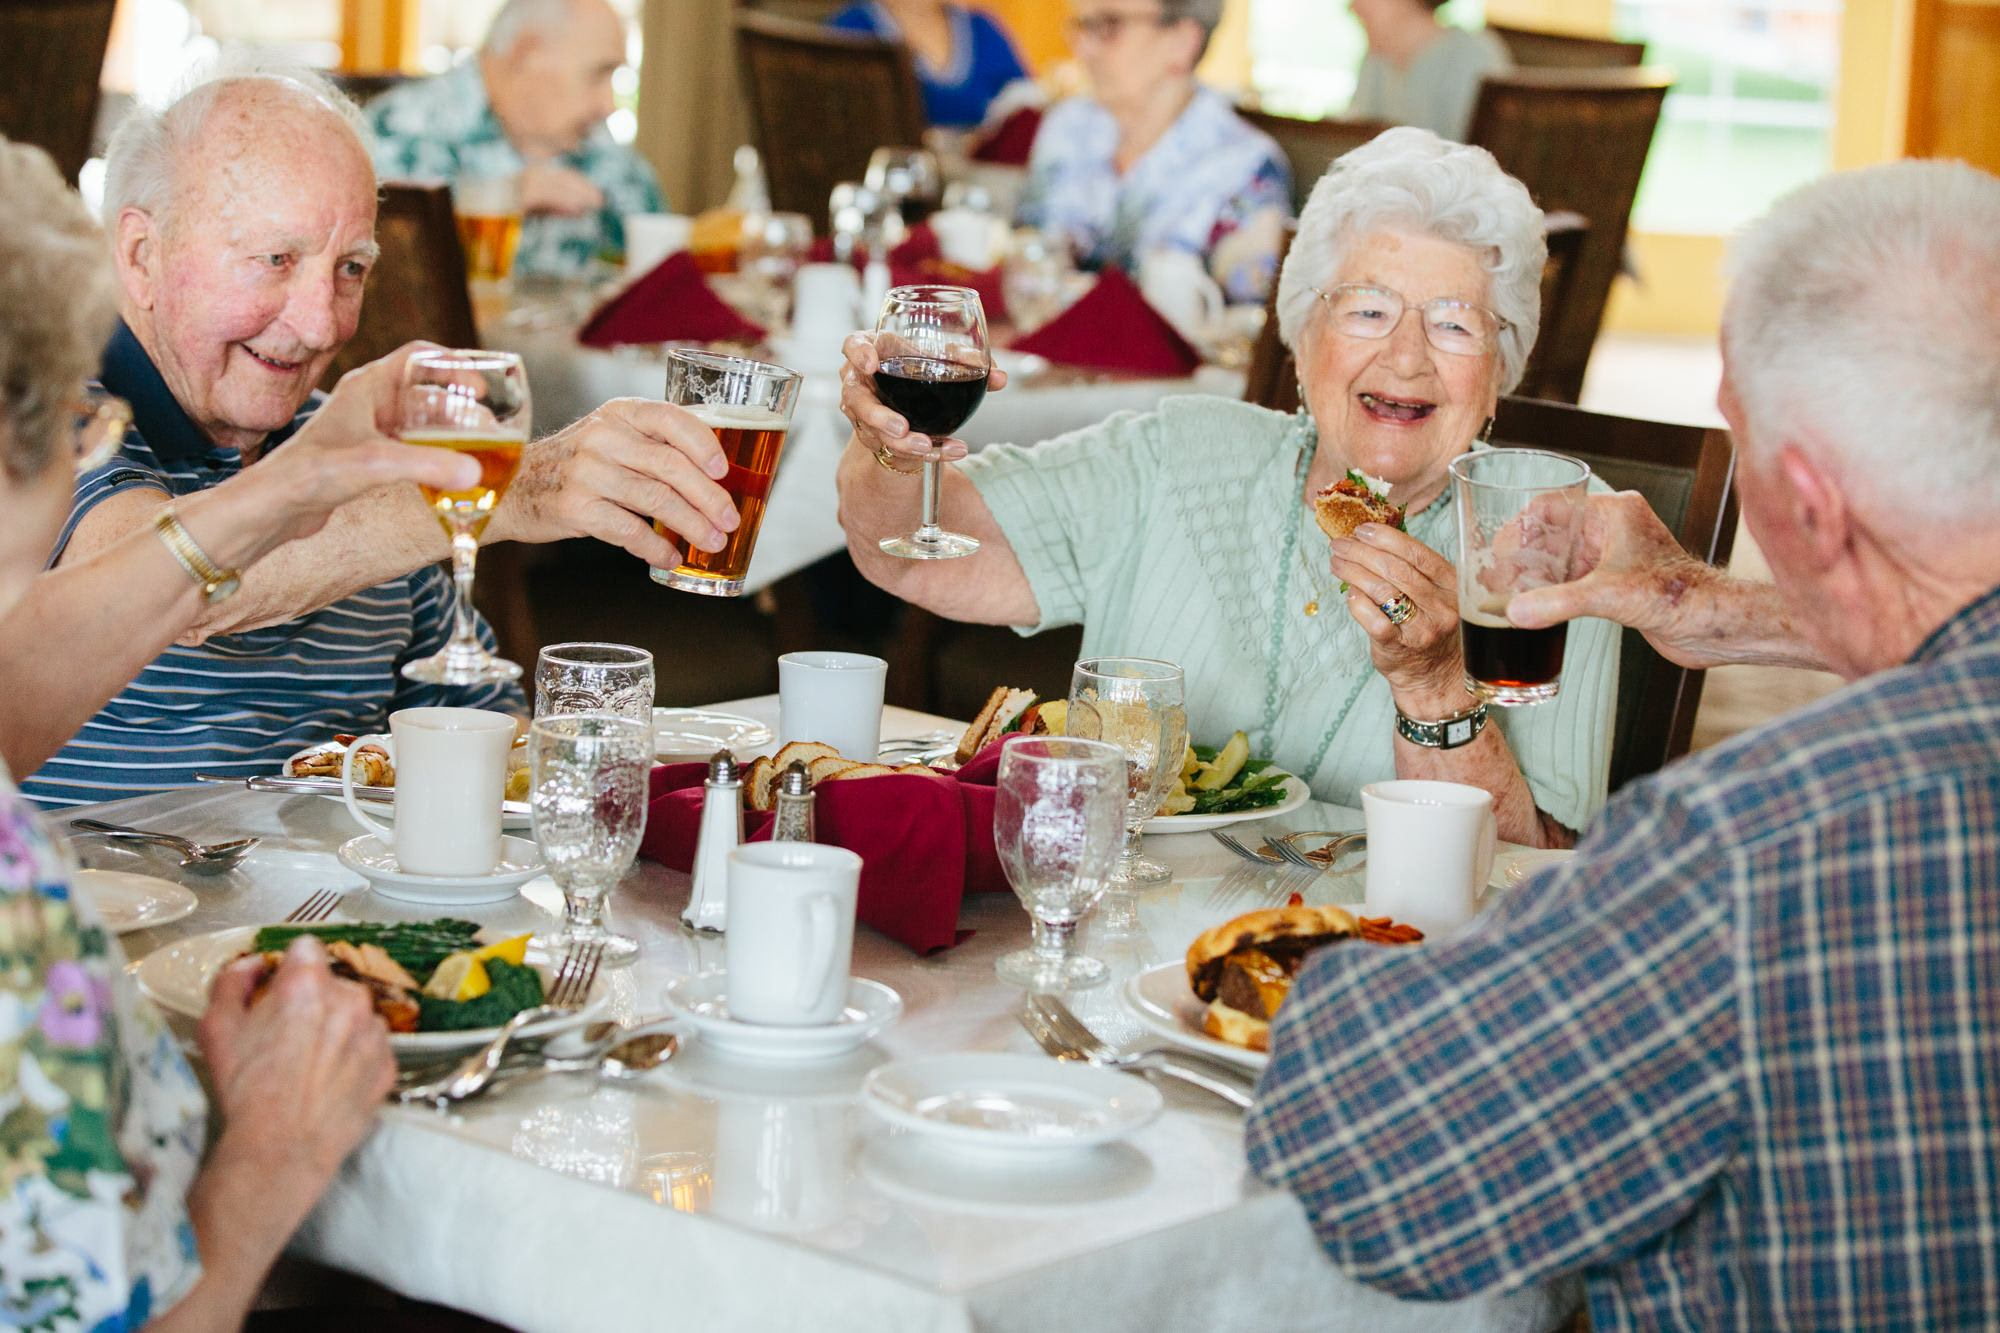 Residents enjoy a meal together in our senior living facility in Missoula, MT